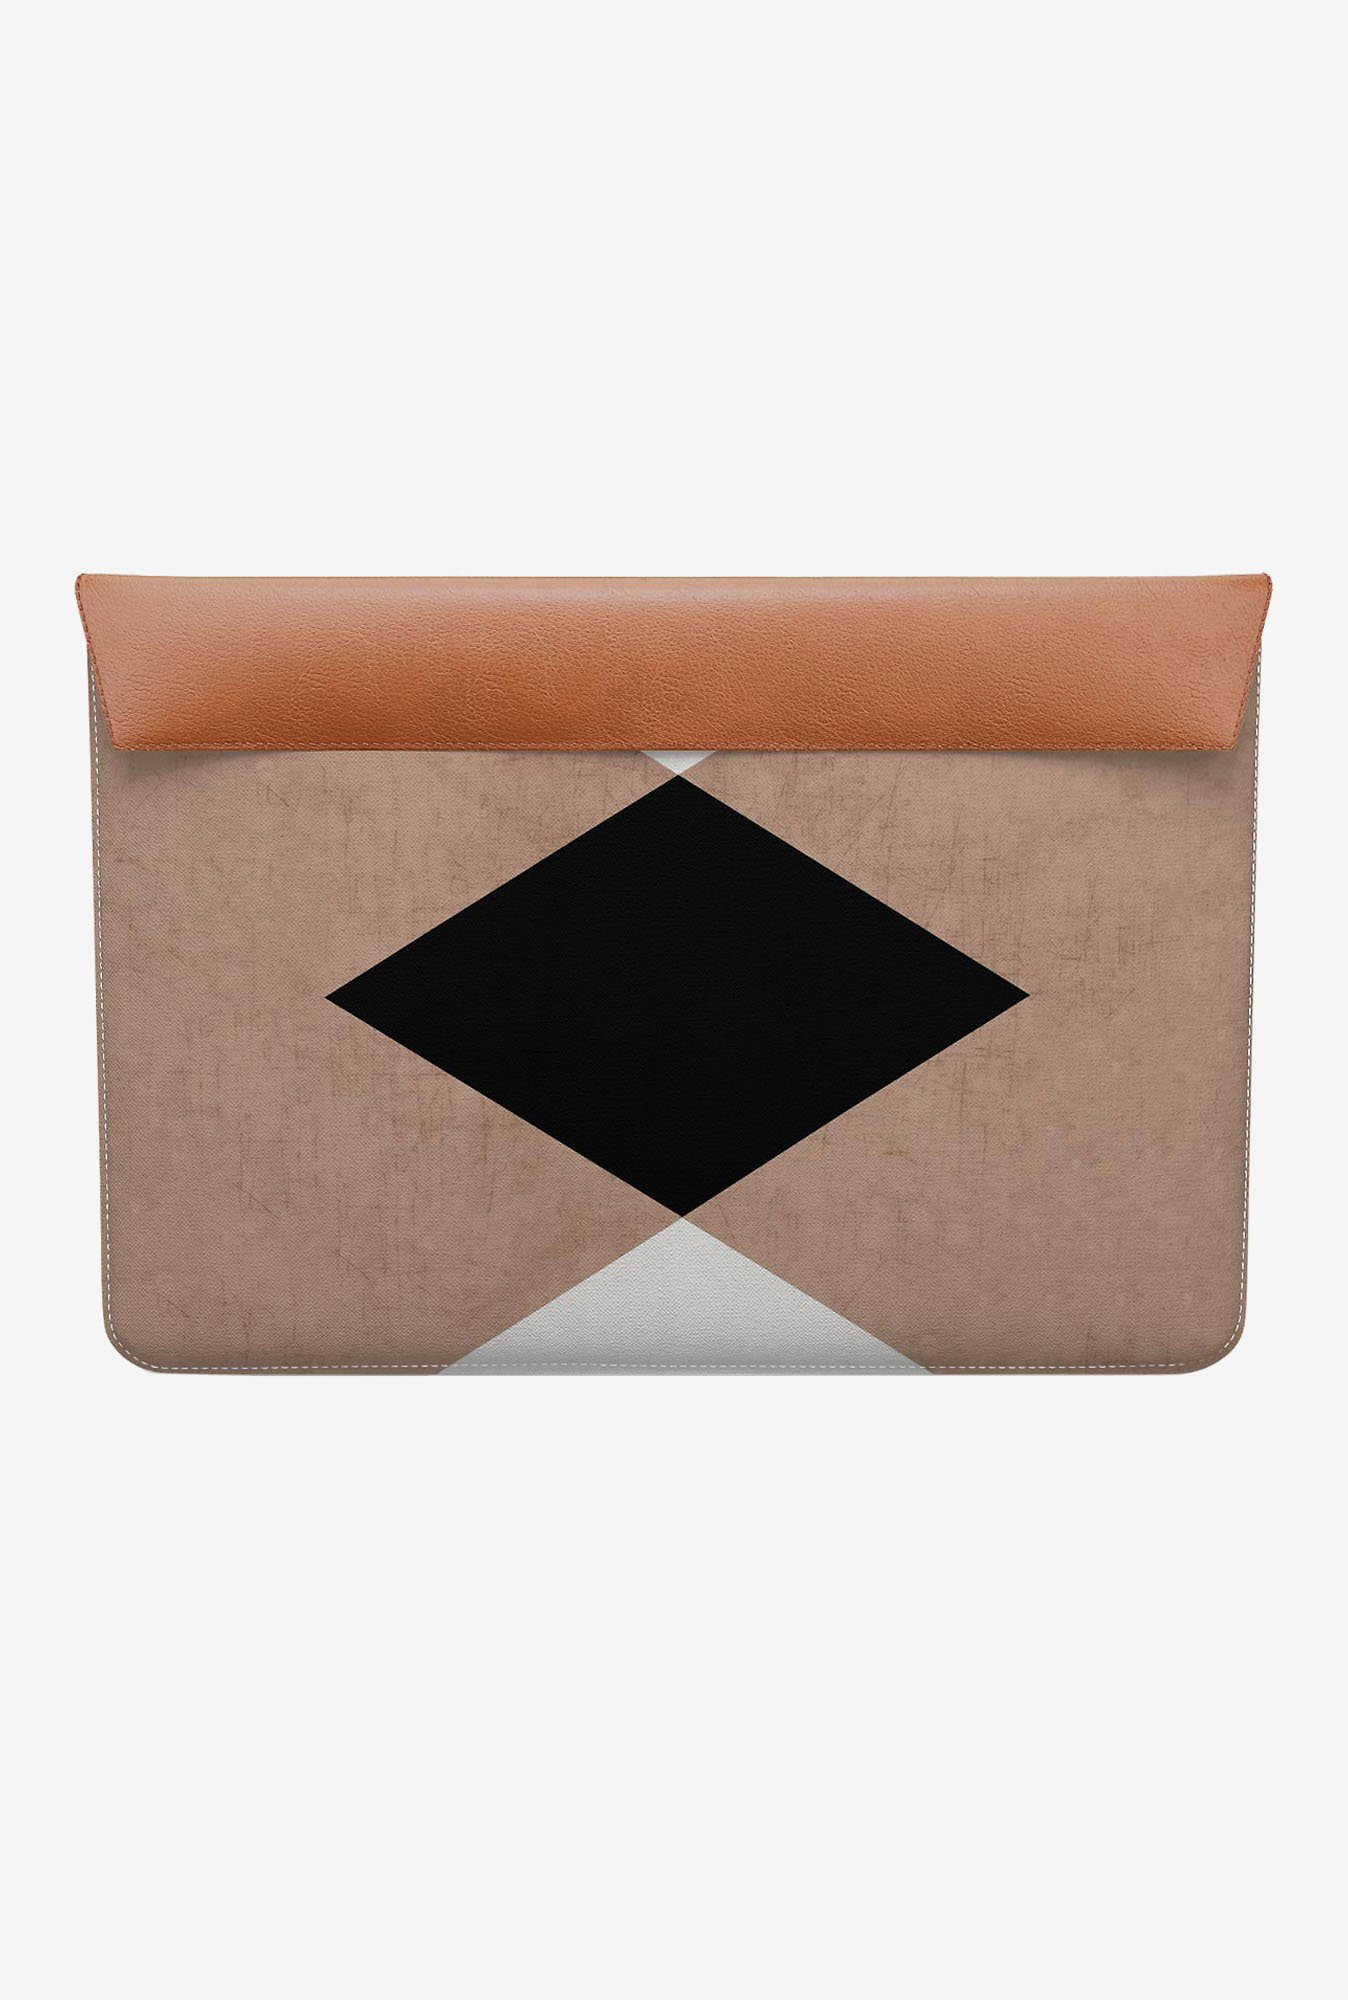 DailyObjects Triangles MacBook 12 Envelope Sleeve